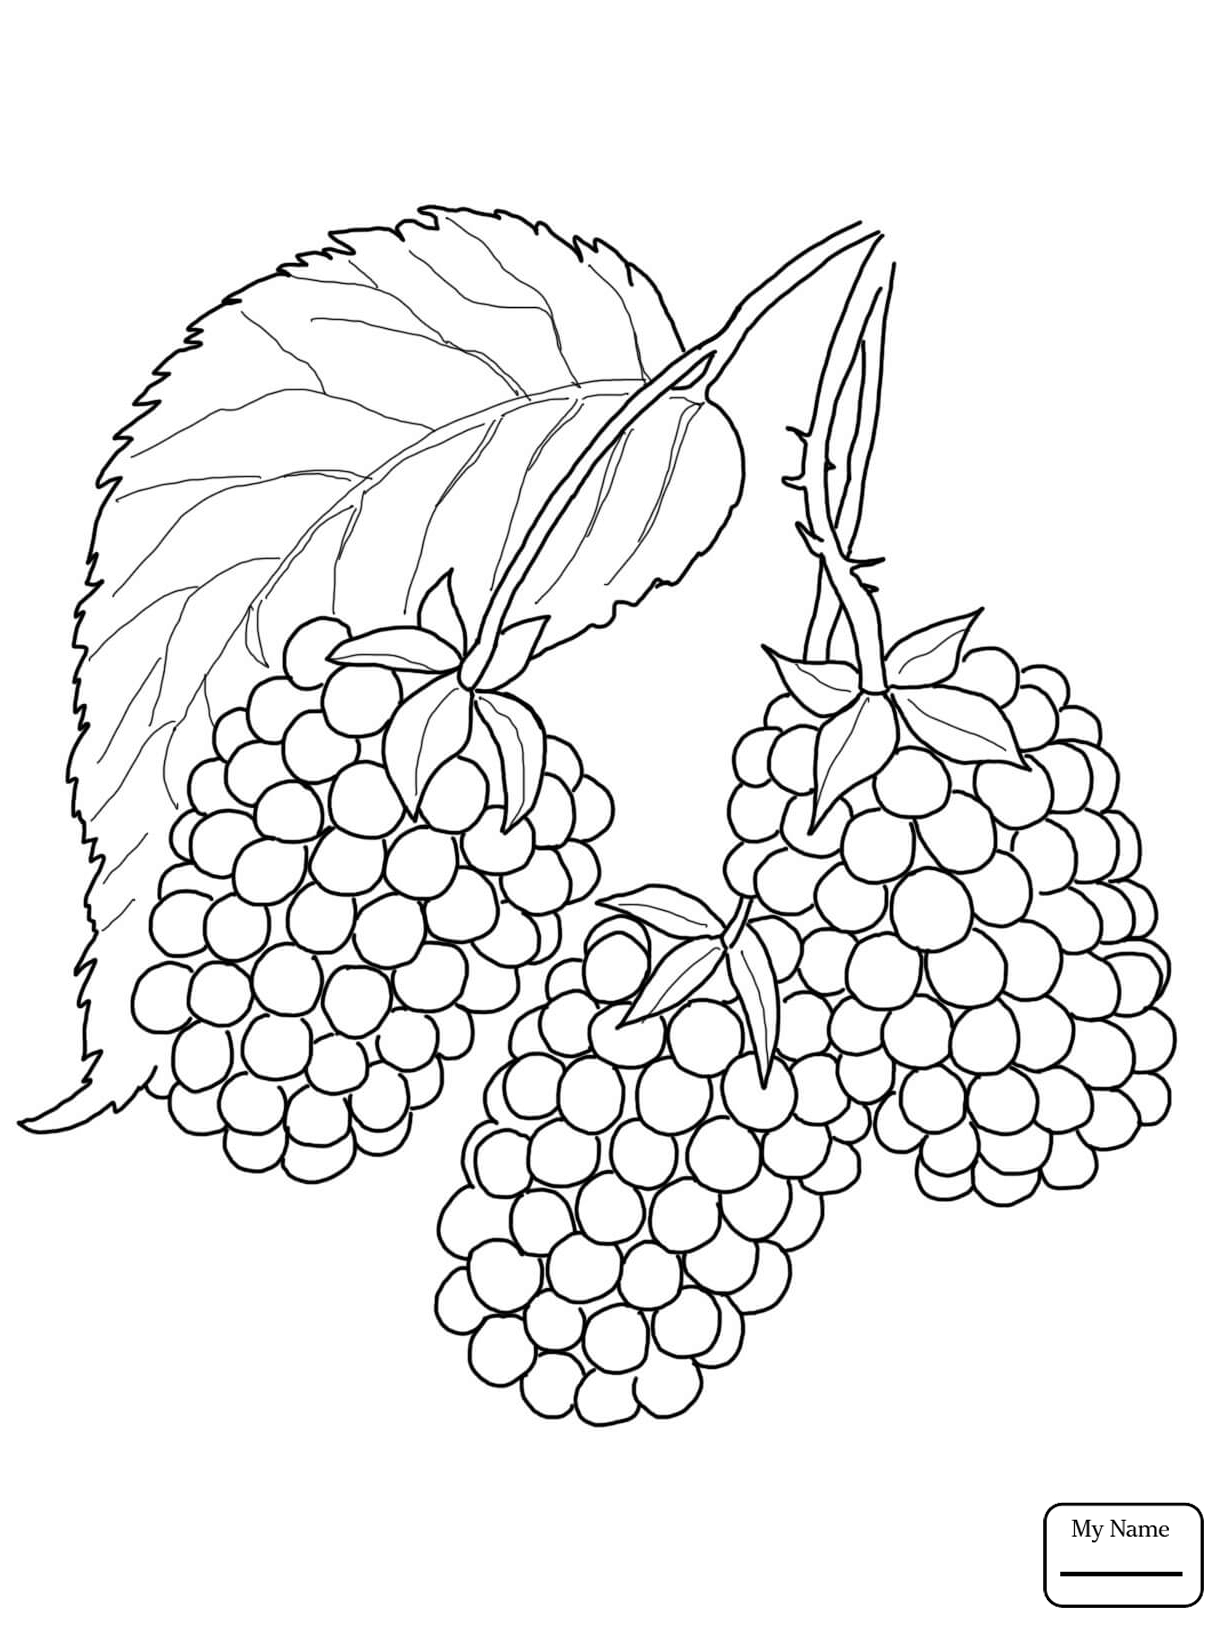 Blackberry Fruit Drawing At Getdrawings